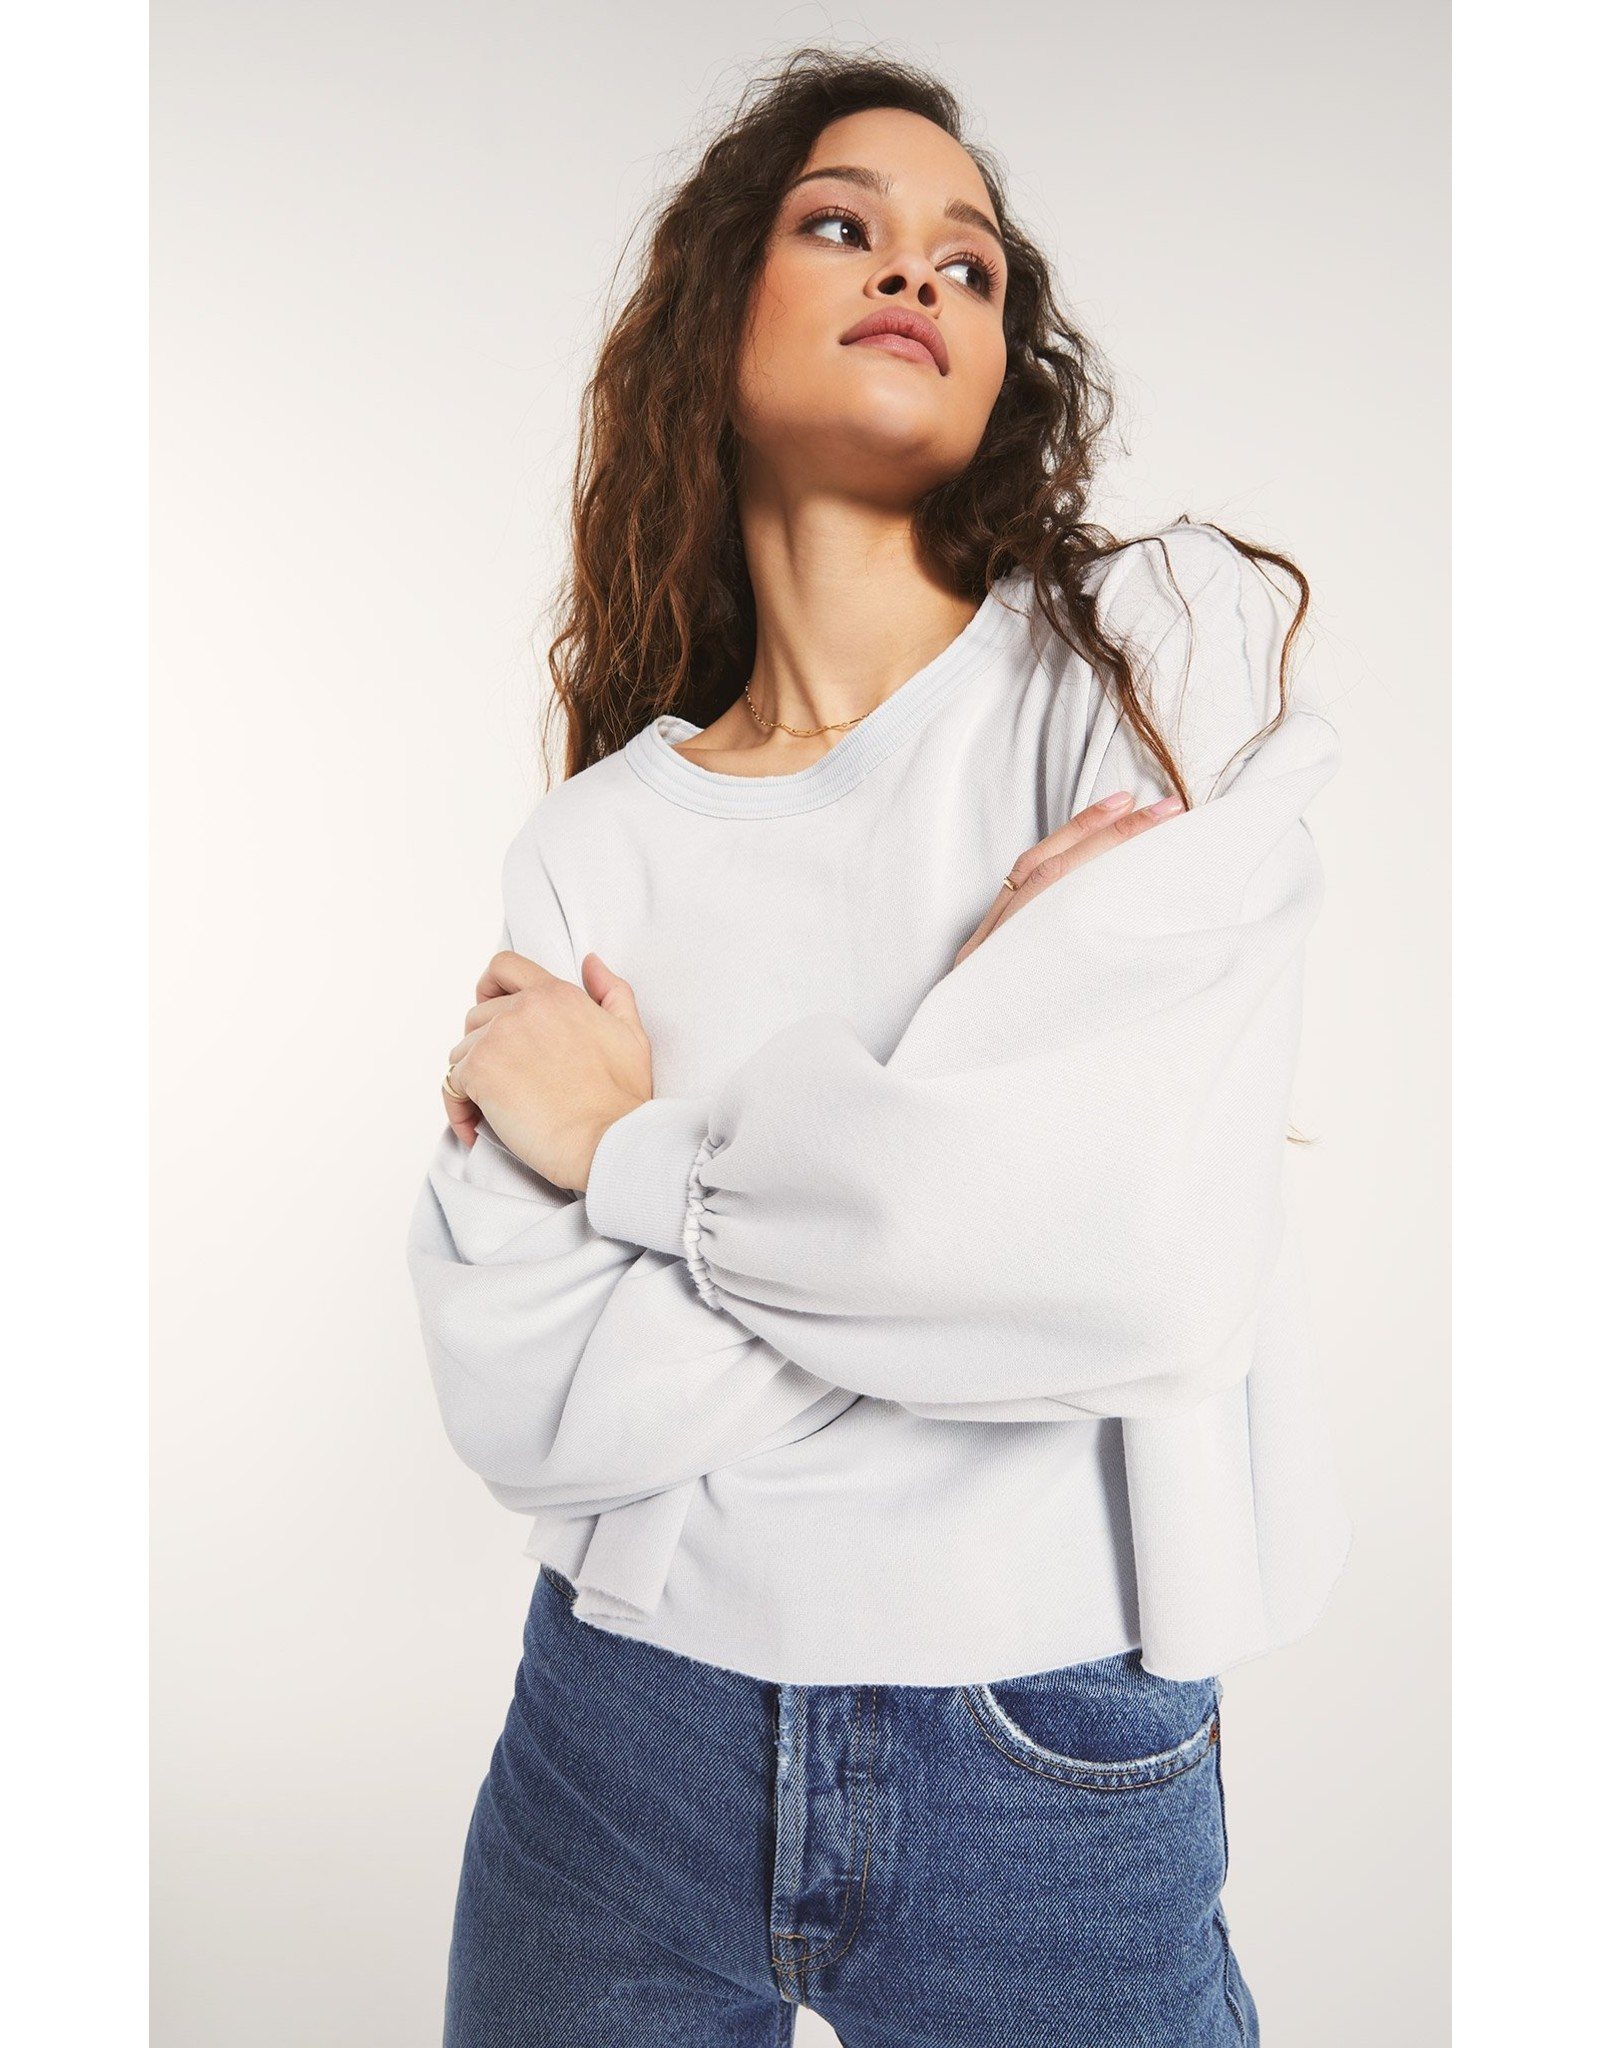 Z-Supply Tempest Sweatshirt